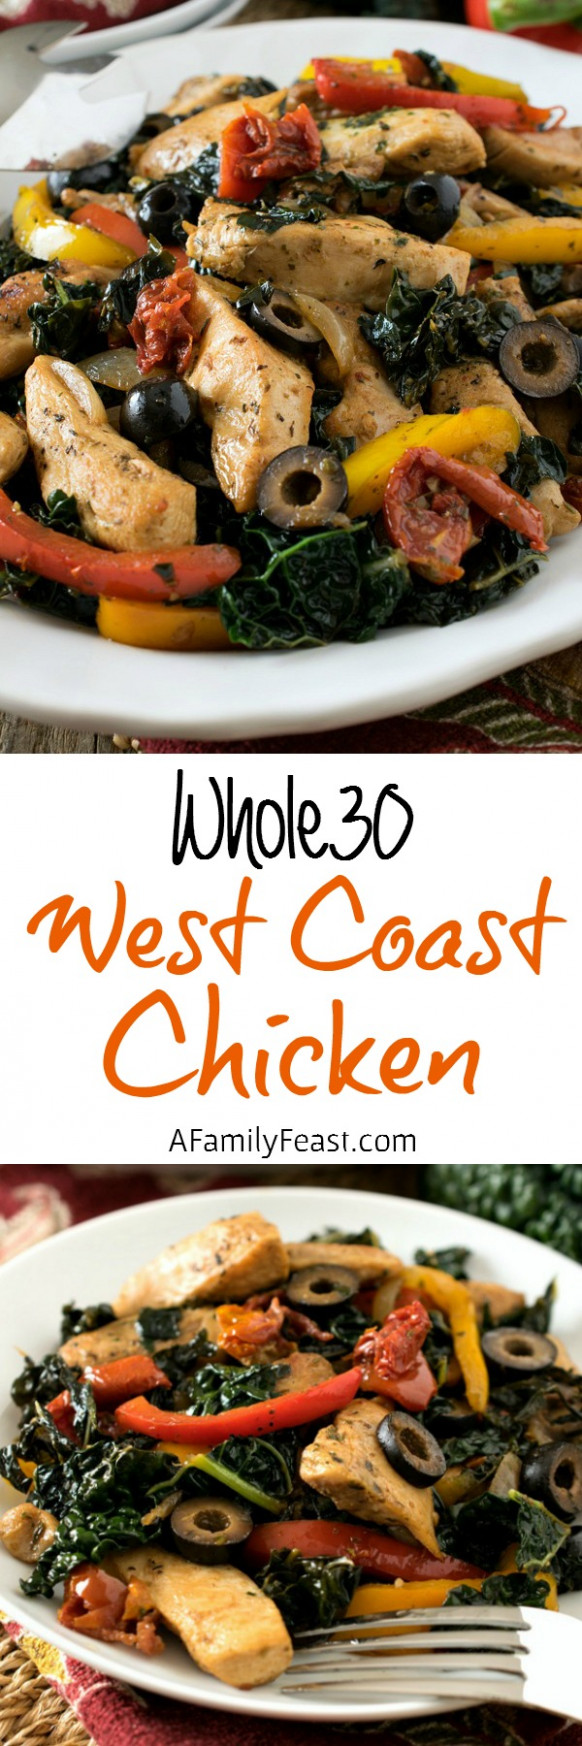 Whole30 West Coast Chicken - A Family Feast® - whole30 recipes chicken